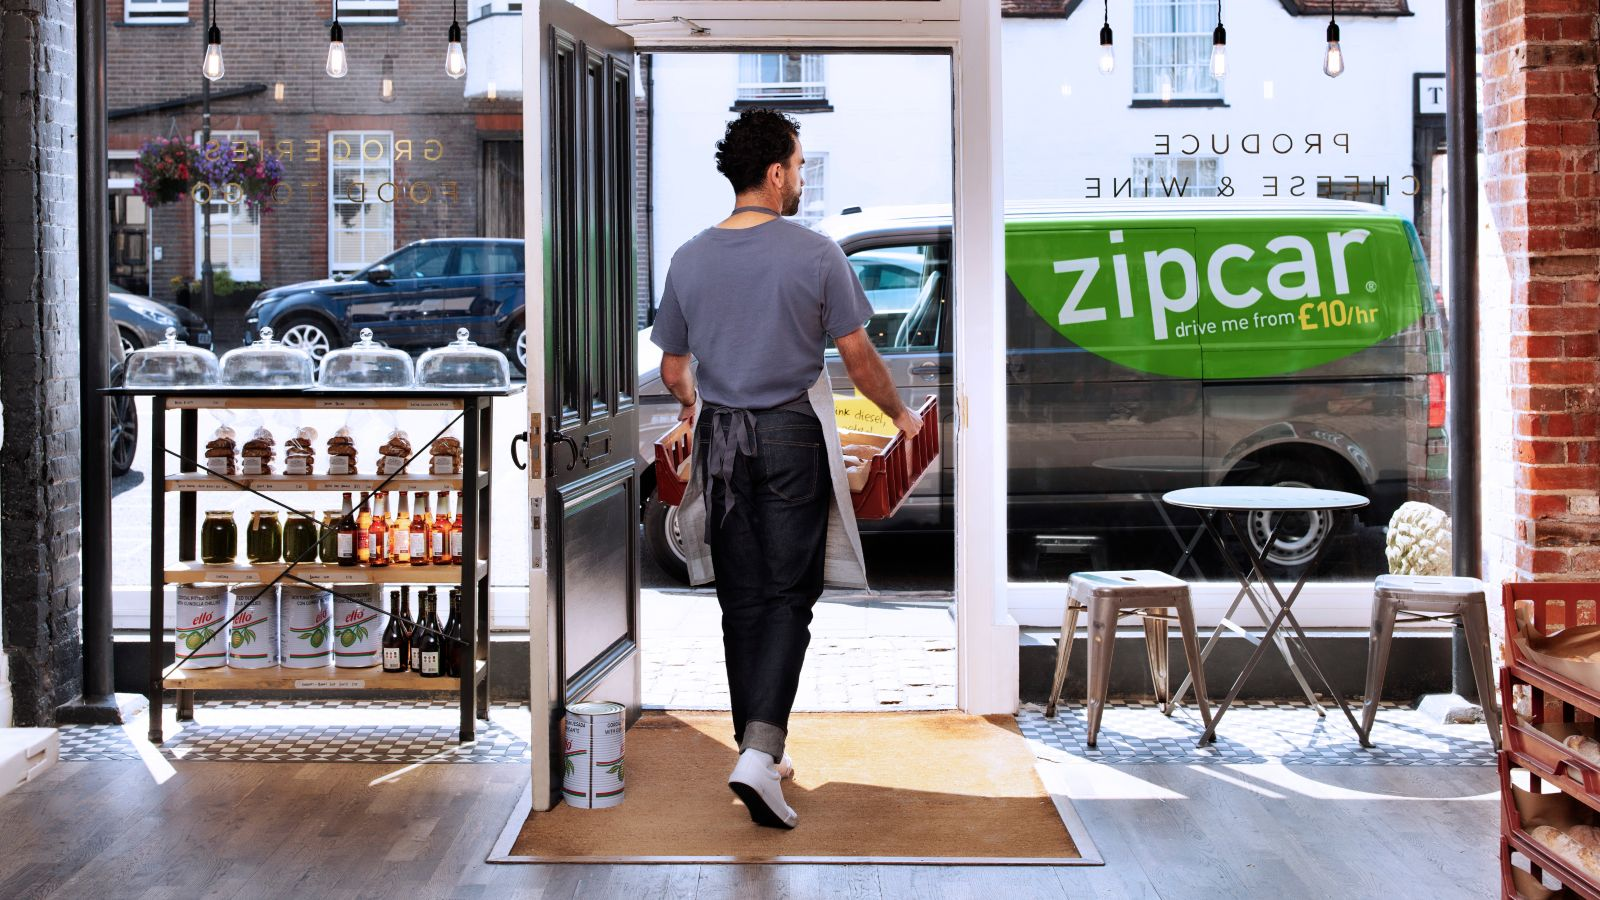 Zipcar for business deliveries